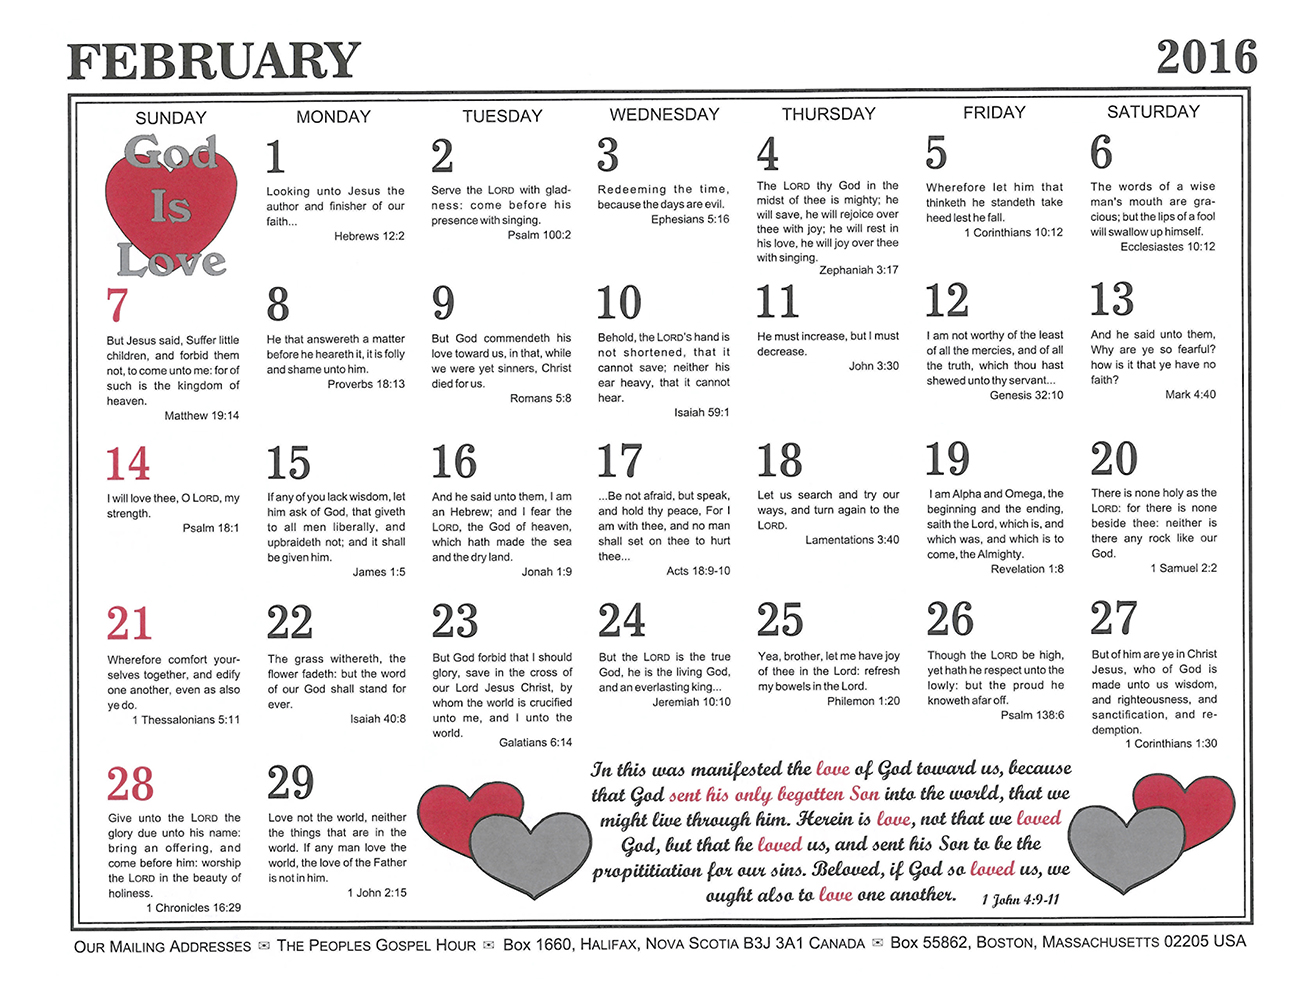 February: 2016 The Peoples Gospel Hour Calendar